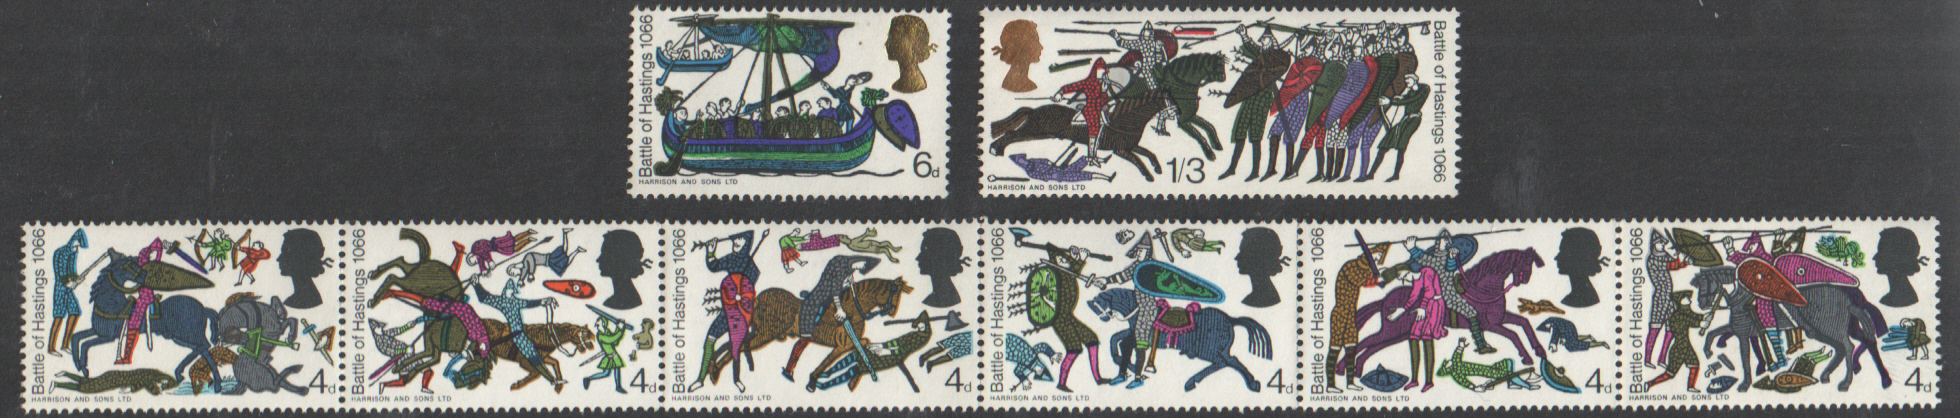 SG705p / 712p 1966 Battle of Hastings (Phosphor) unmounted mint set of 8